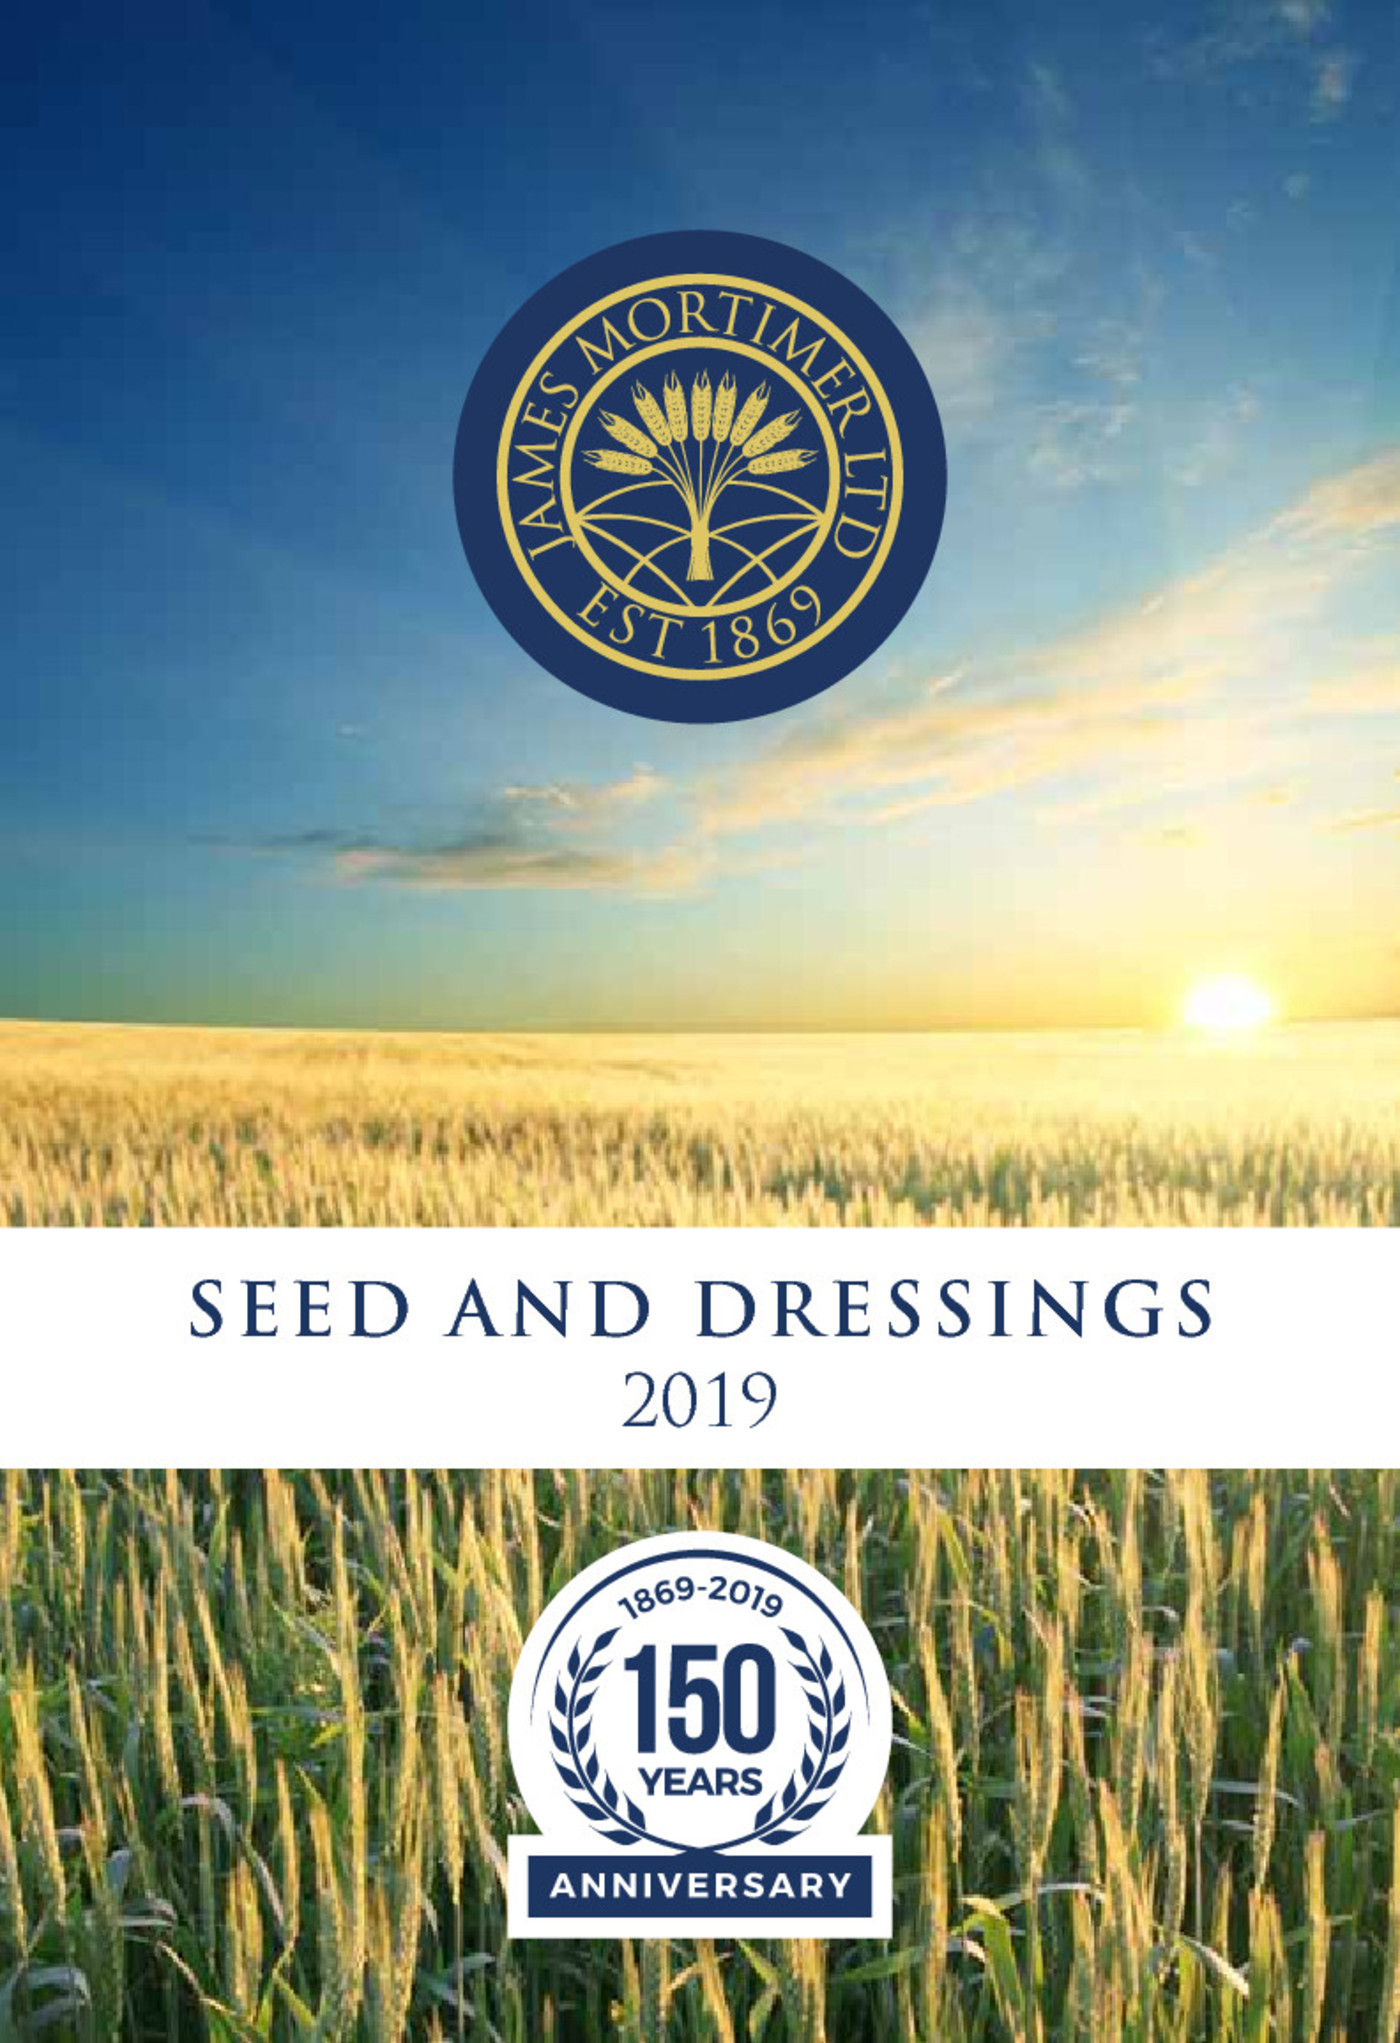 New Seed & Dressing 2019/20 Brochure